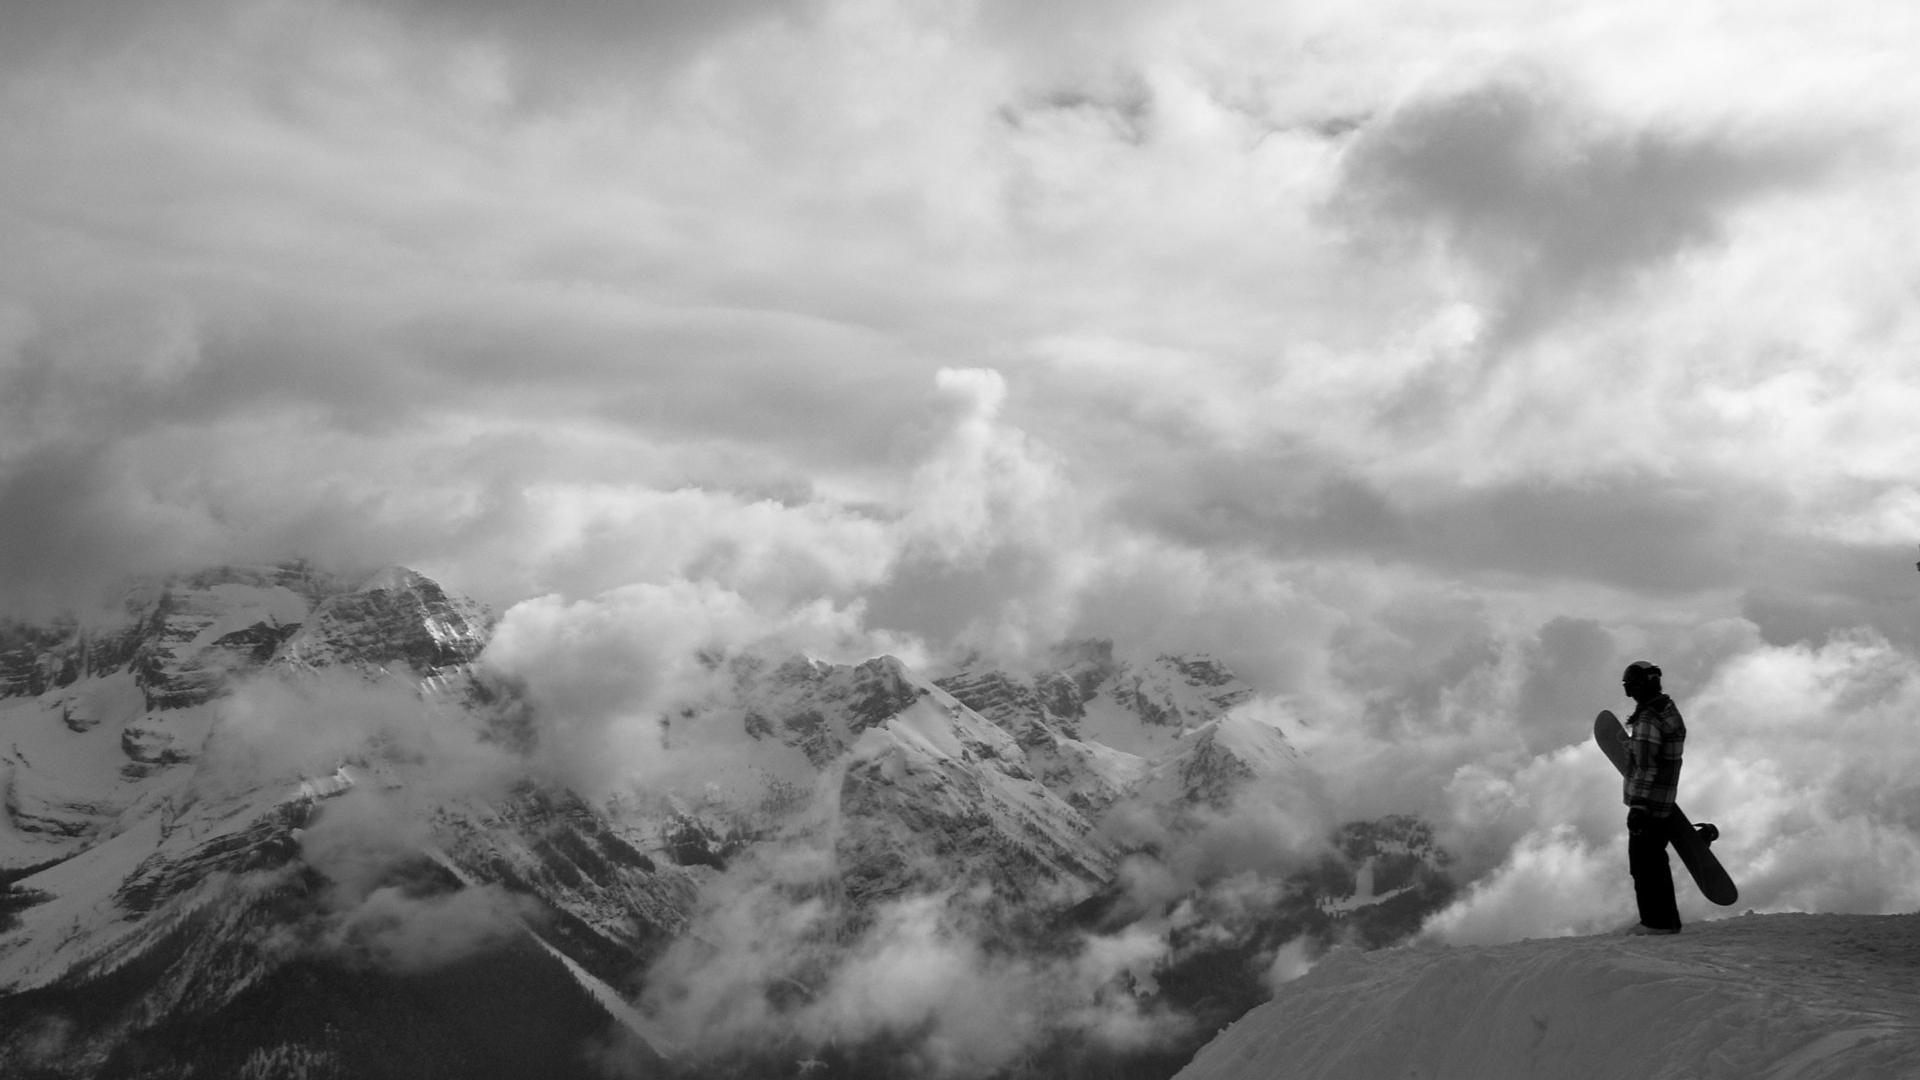 Download wallpaper 1920x1080 mountain snowboard top fog conquest mountain snowboard top voltagebd Image collections